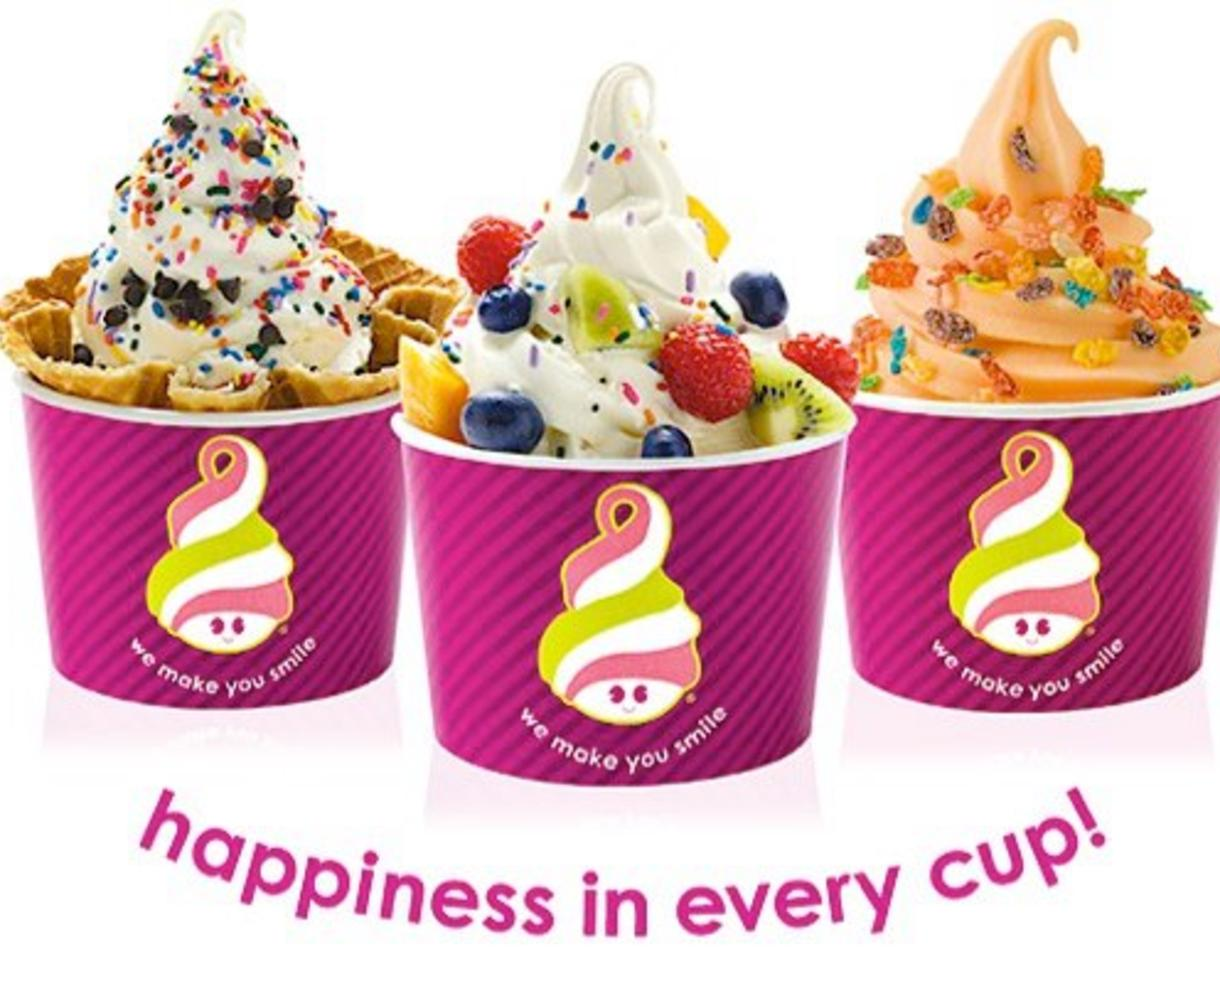 10 for 20 worth of frozen yogurt from menchies 7 locations in md dc va and pa 50 off